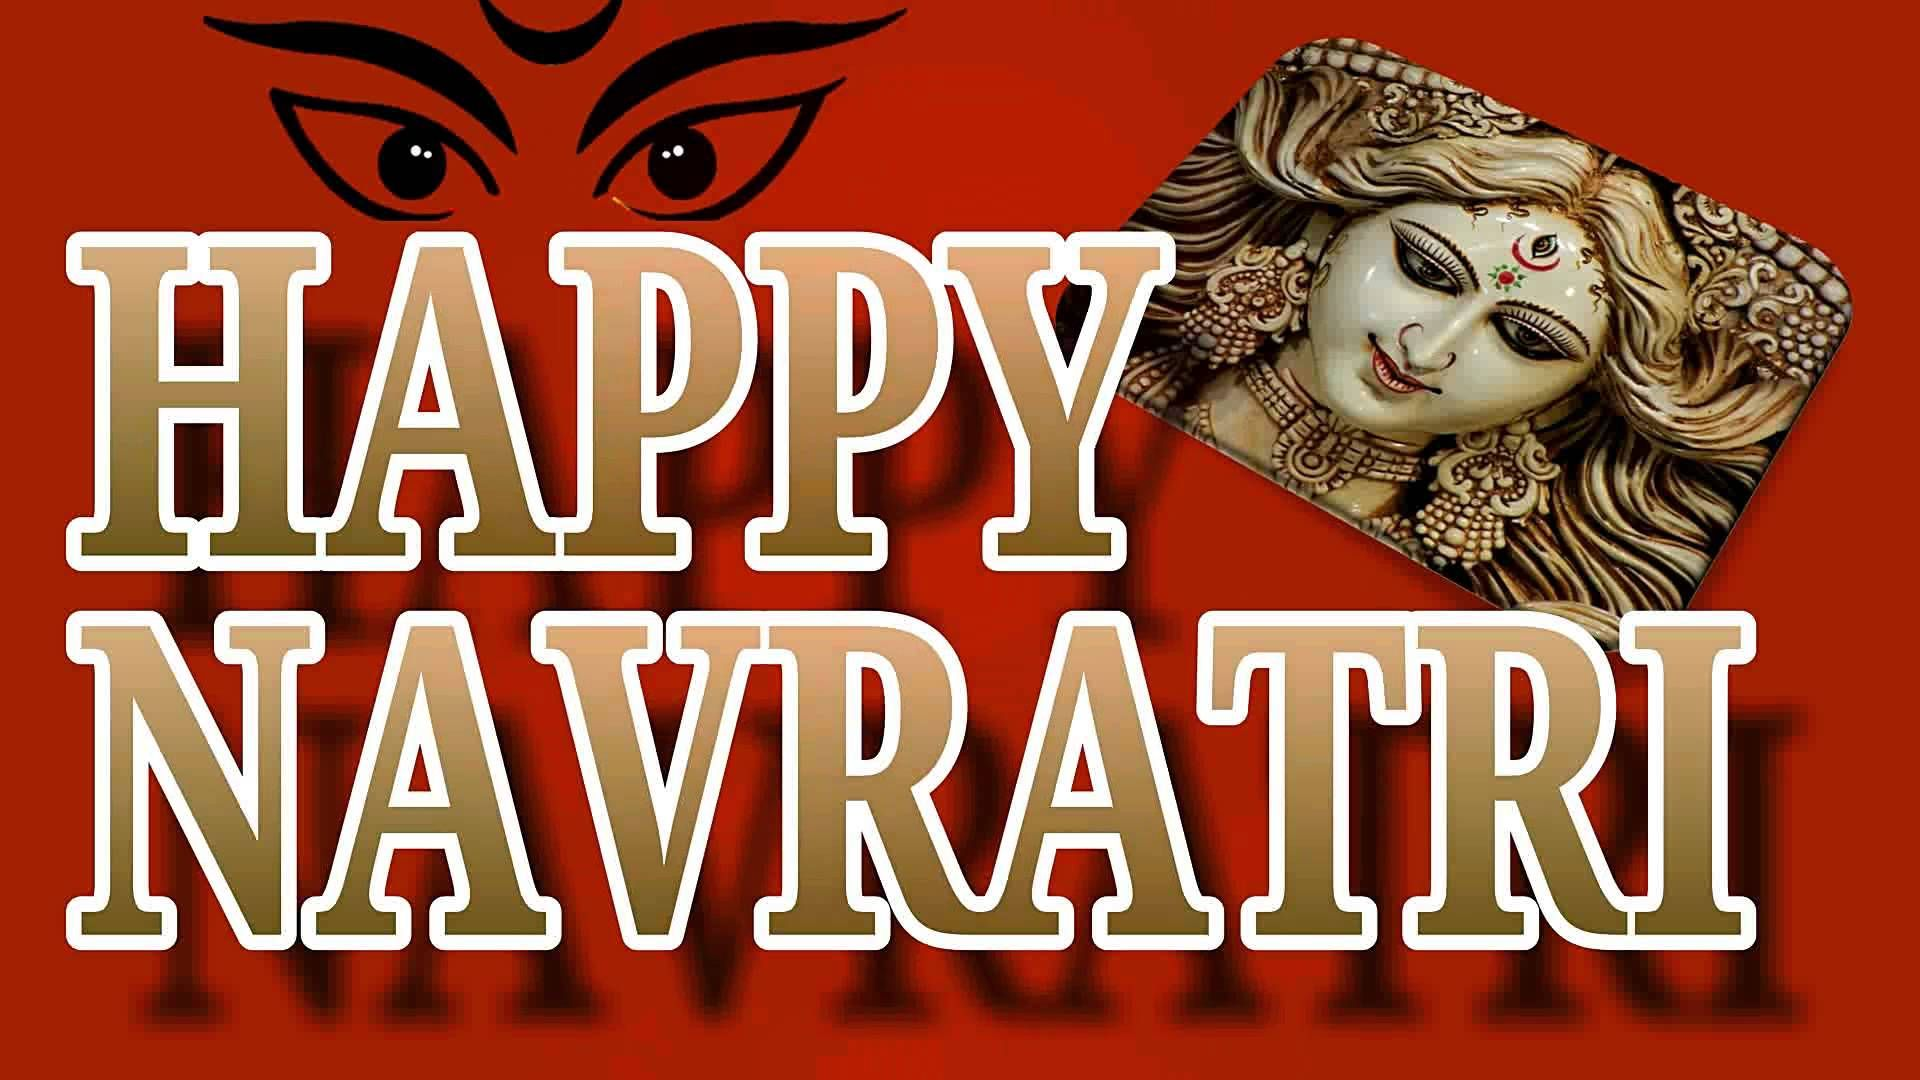 Happy navratri 2016 image wishes quotes navratri 2016 navratri happy navratri 2016 image wishes quotes m4hsunfo